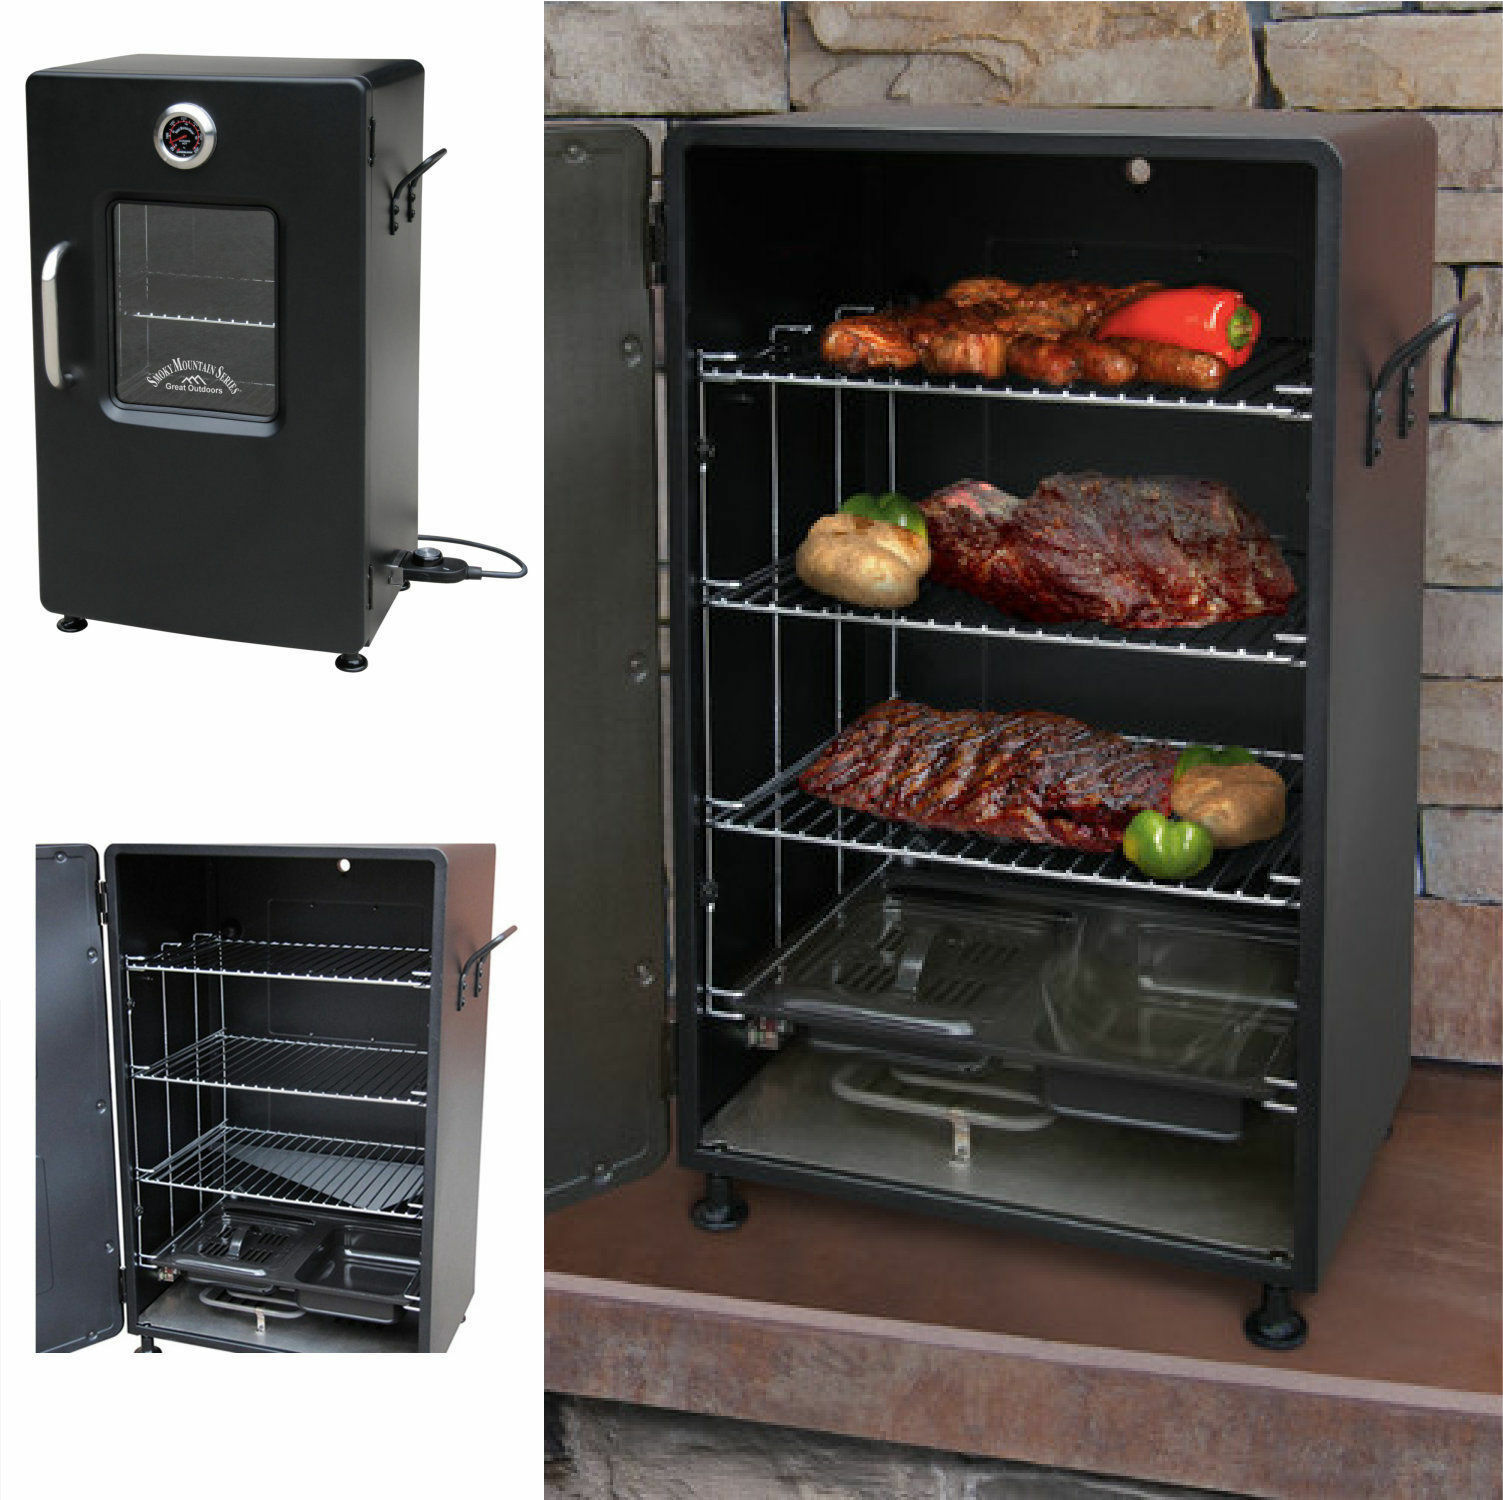 Portable Electric Bbq : Electric bbq smoker barbecue grill outdoor portable meat